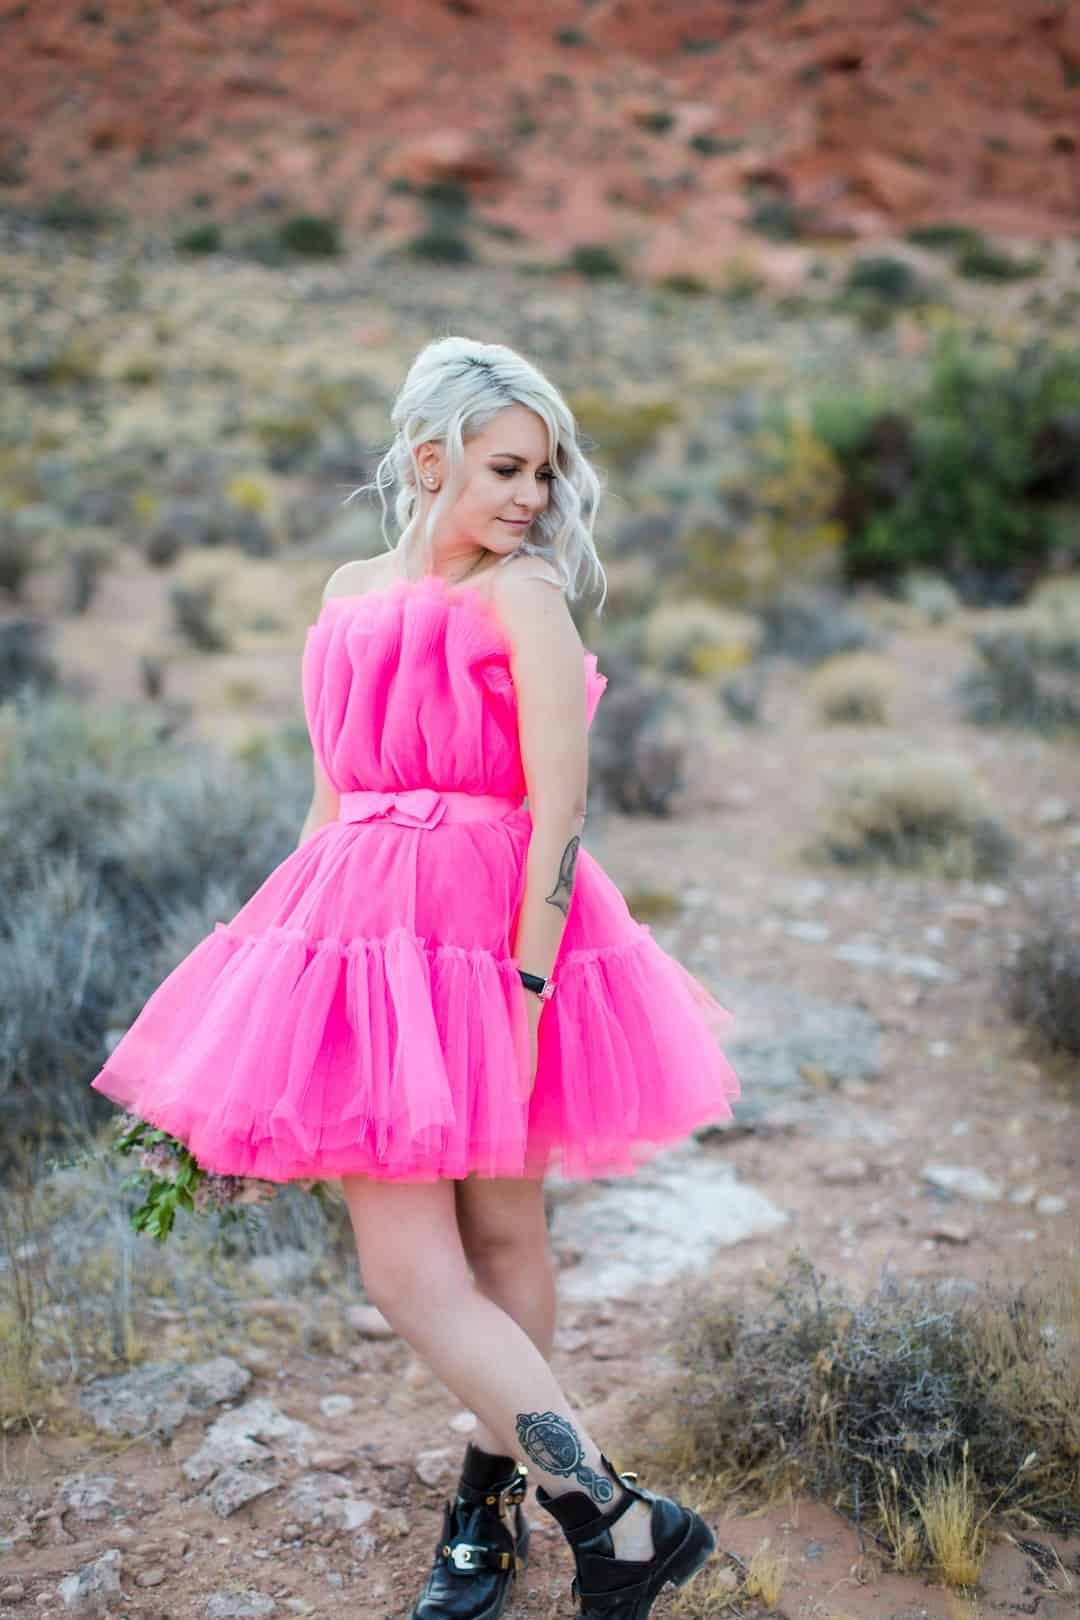 RED ROCK CANYON LAS VEGAS ELOPEMENT STARRING BRIDE IN SHORT PINK HIPSTER WEDDING DRESS